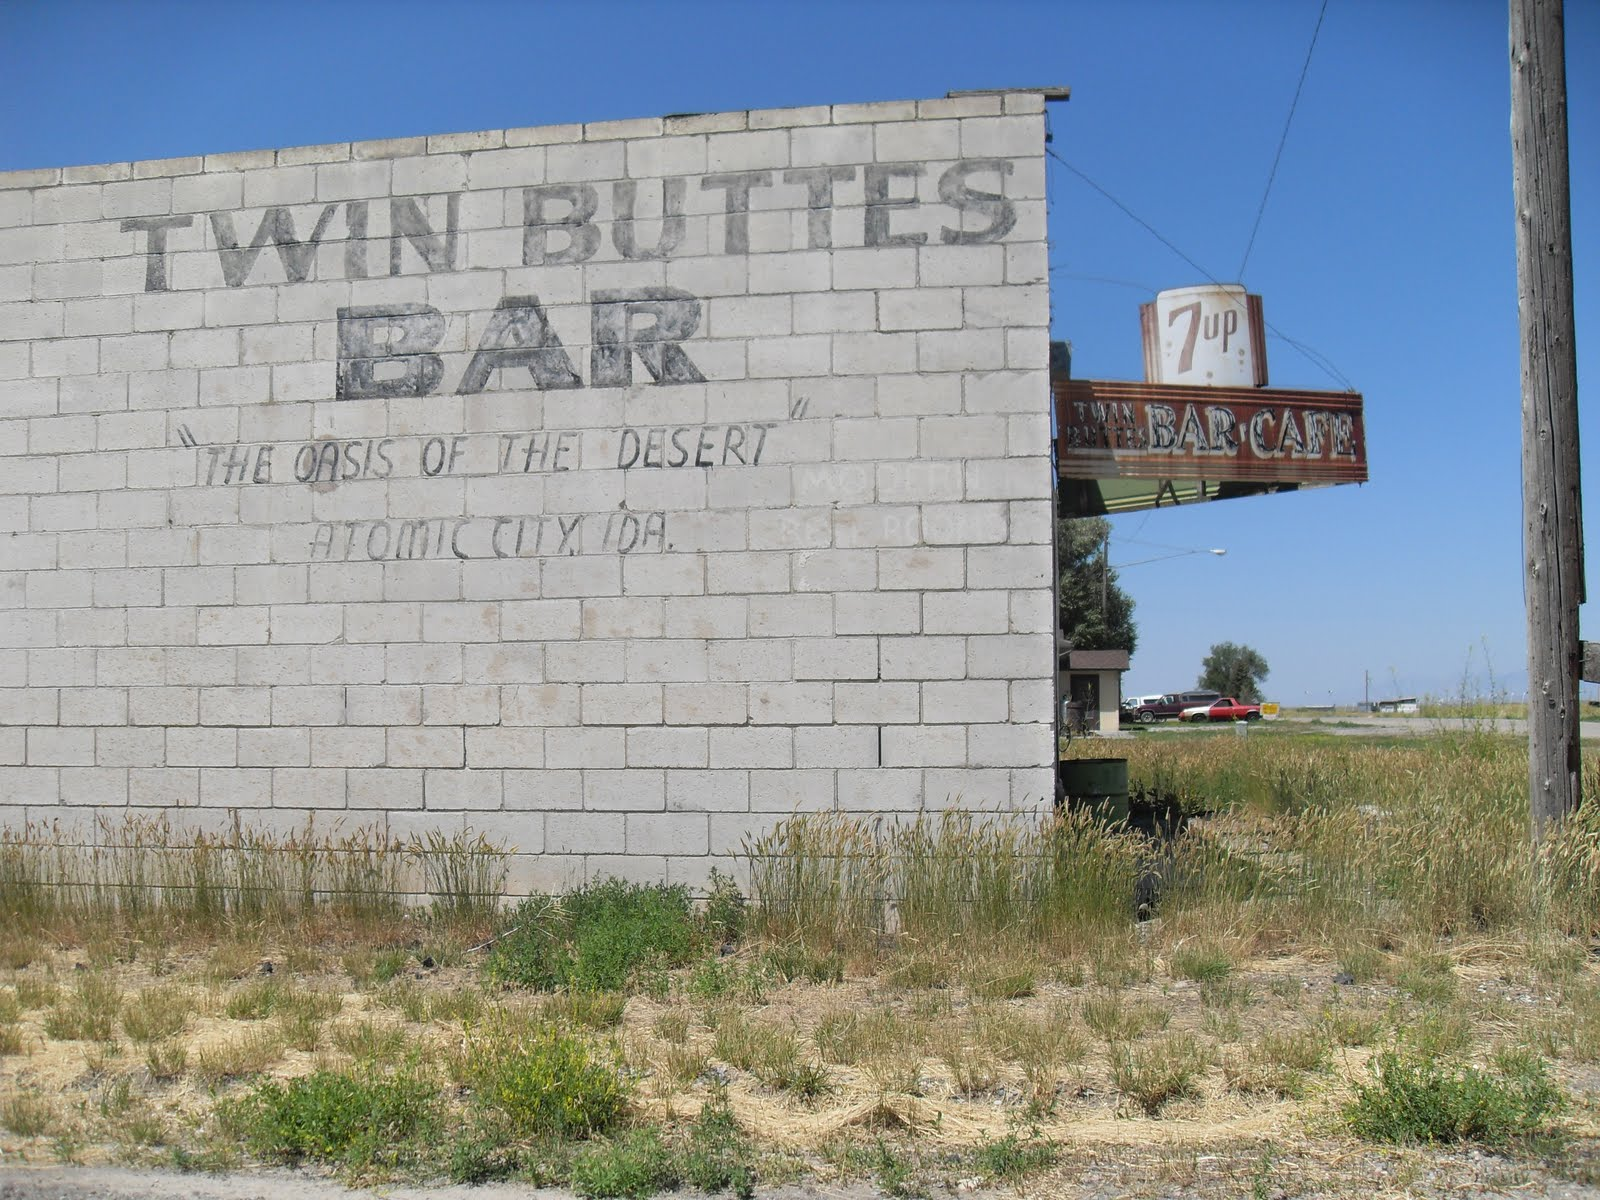 atomic city Get directions, maps, and traffic for atomic city, id check flight prices and hotel  availability for your visit.